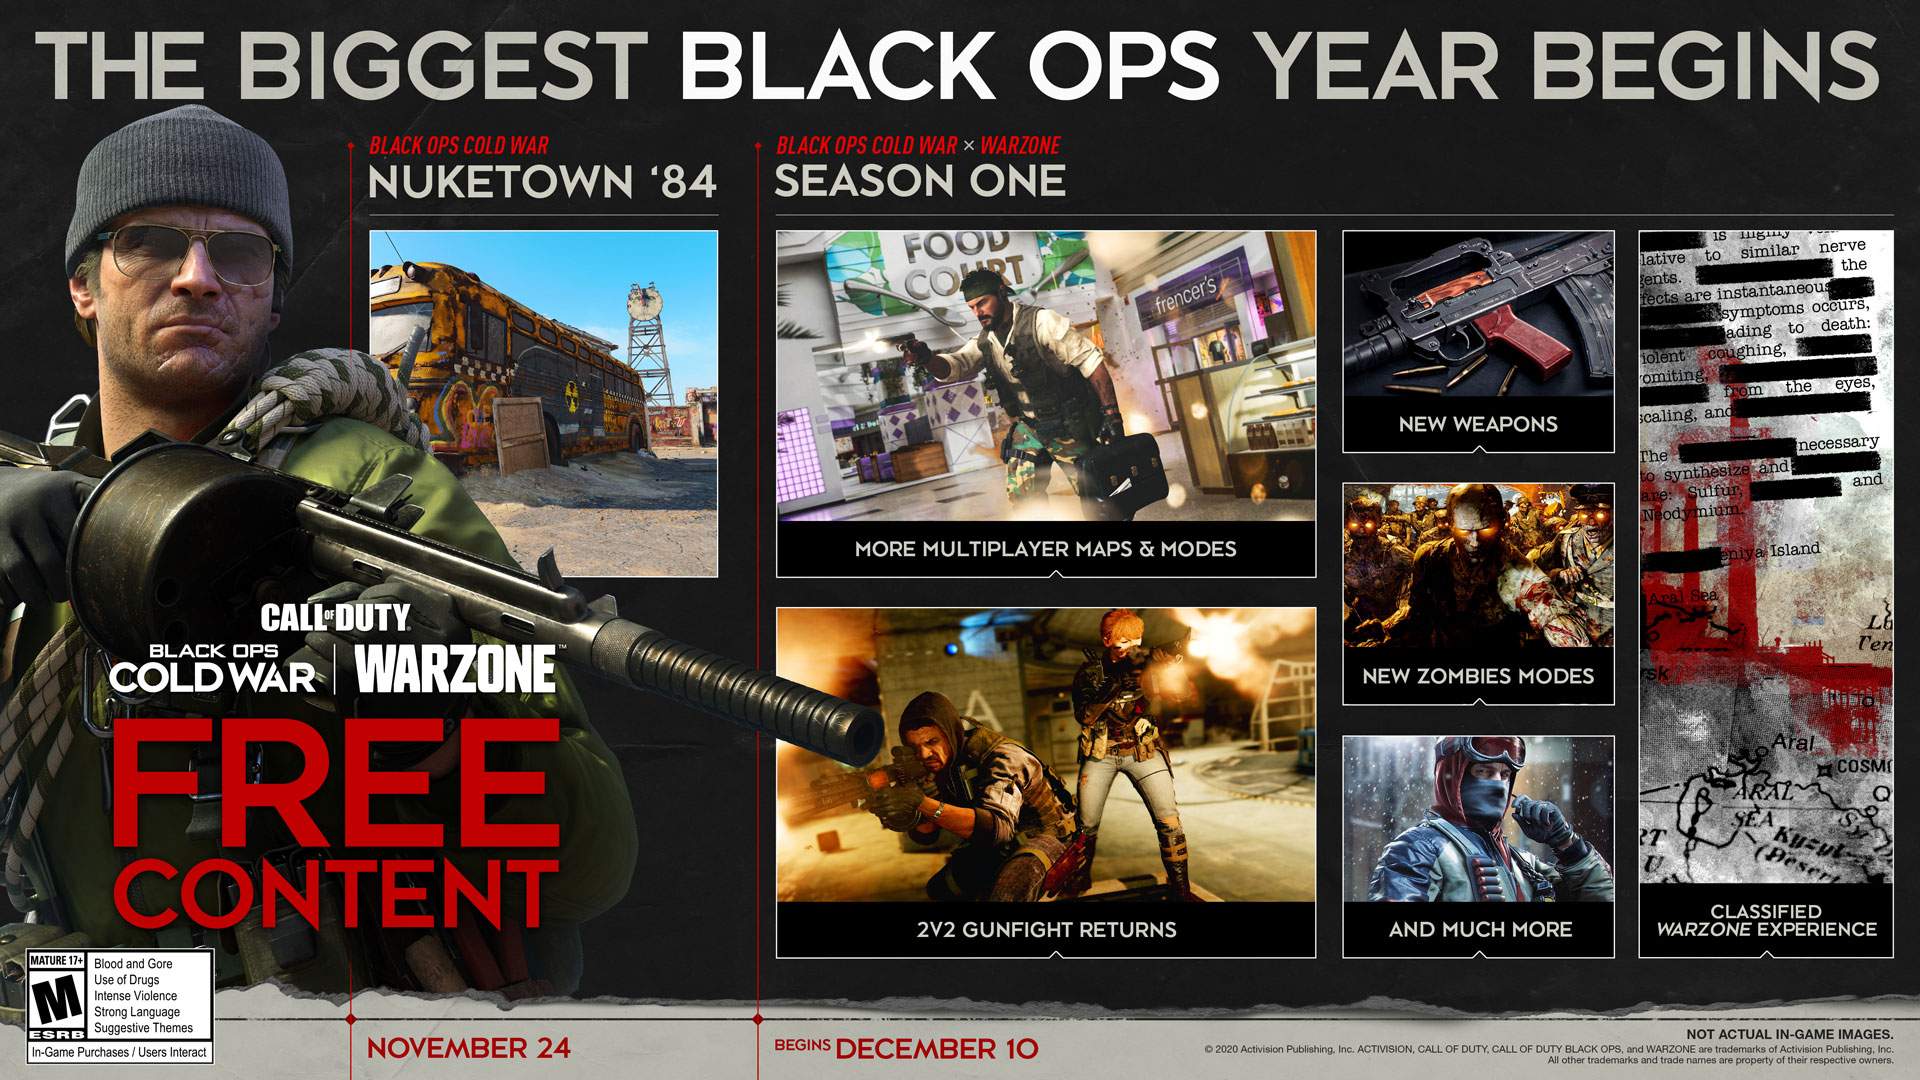 saison-1-cold-war-warzone-date-sortie-call-of-duty